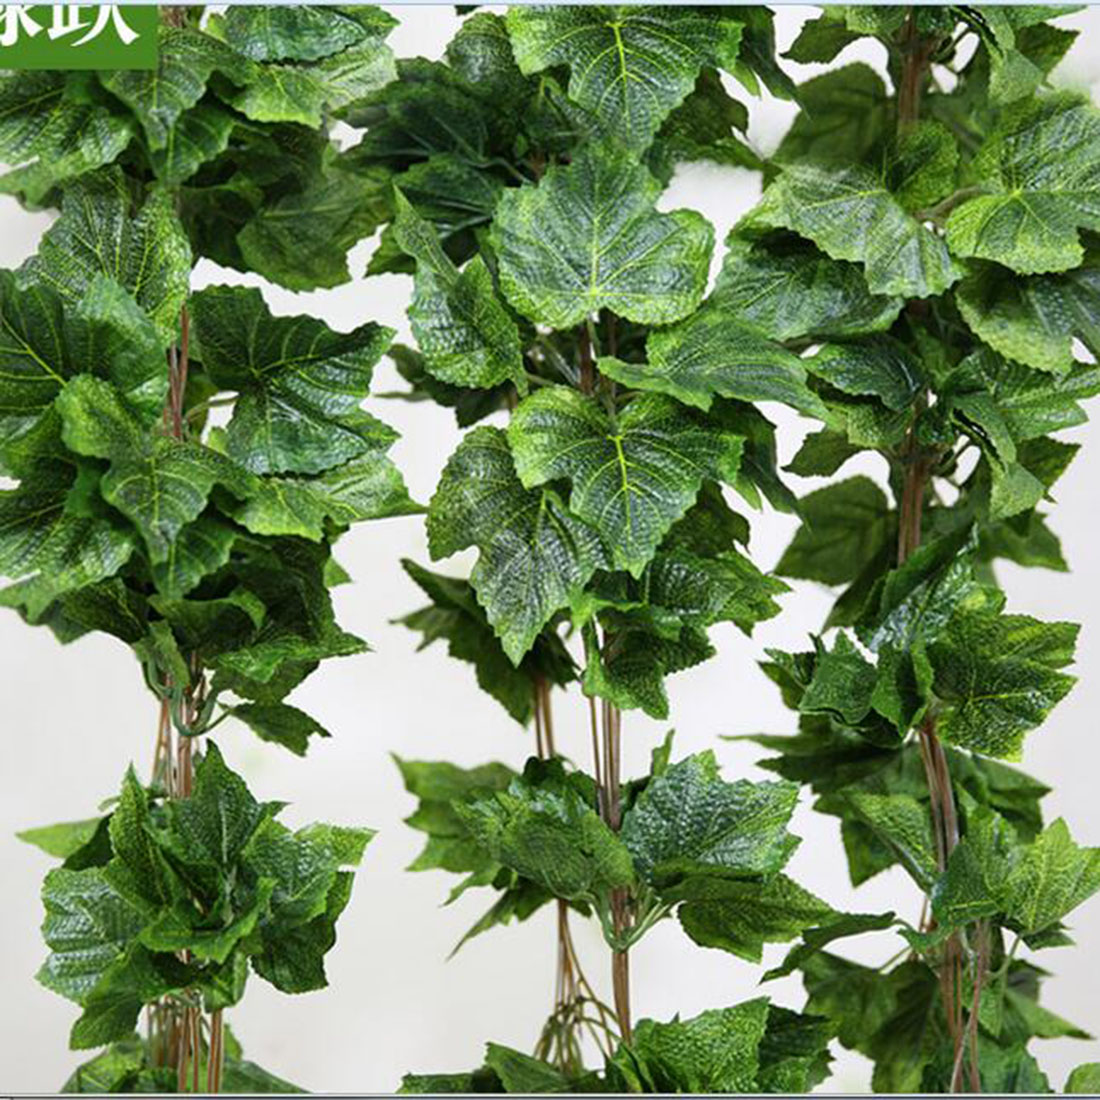 Home Decor Fashion Decorative Flowers Artificial grape leave Leaf Garland Plants Bunch Fake Foliage  -  Super sweetheart store store